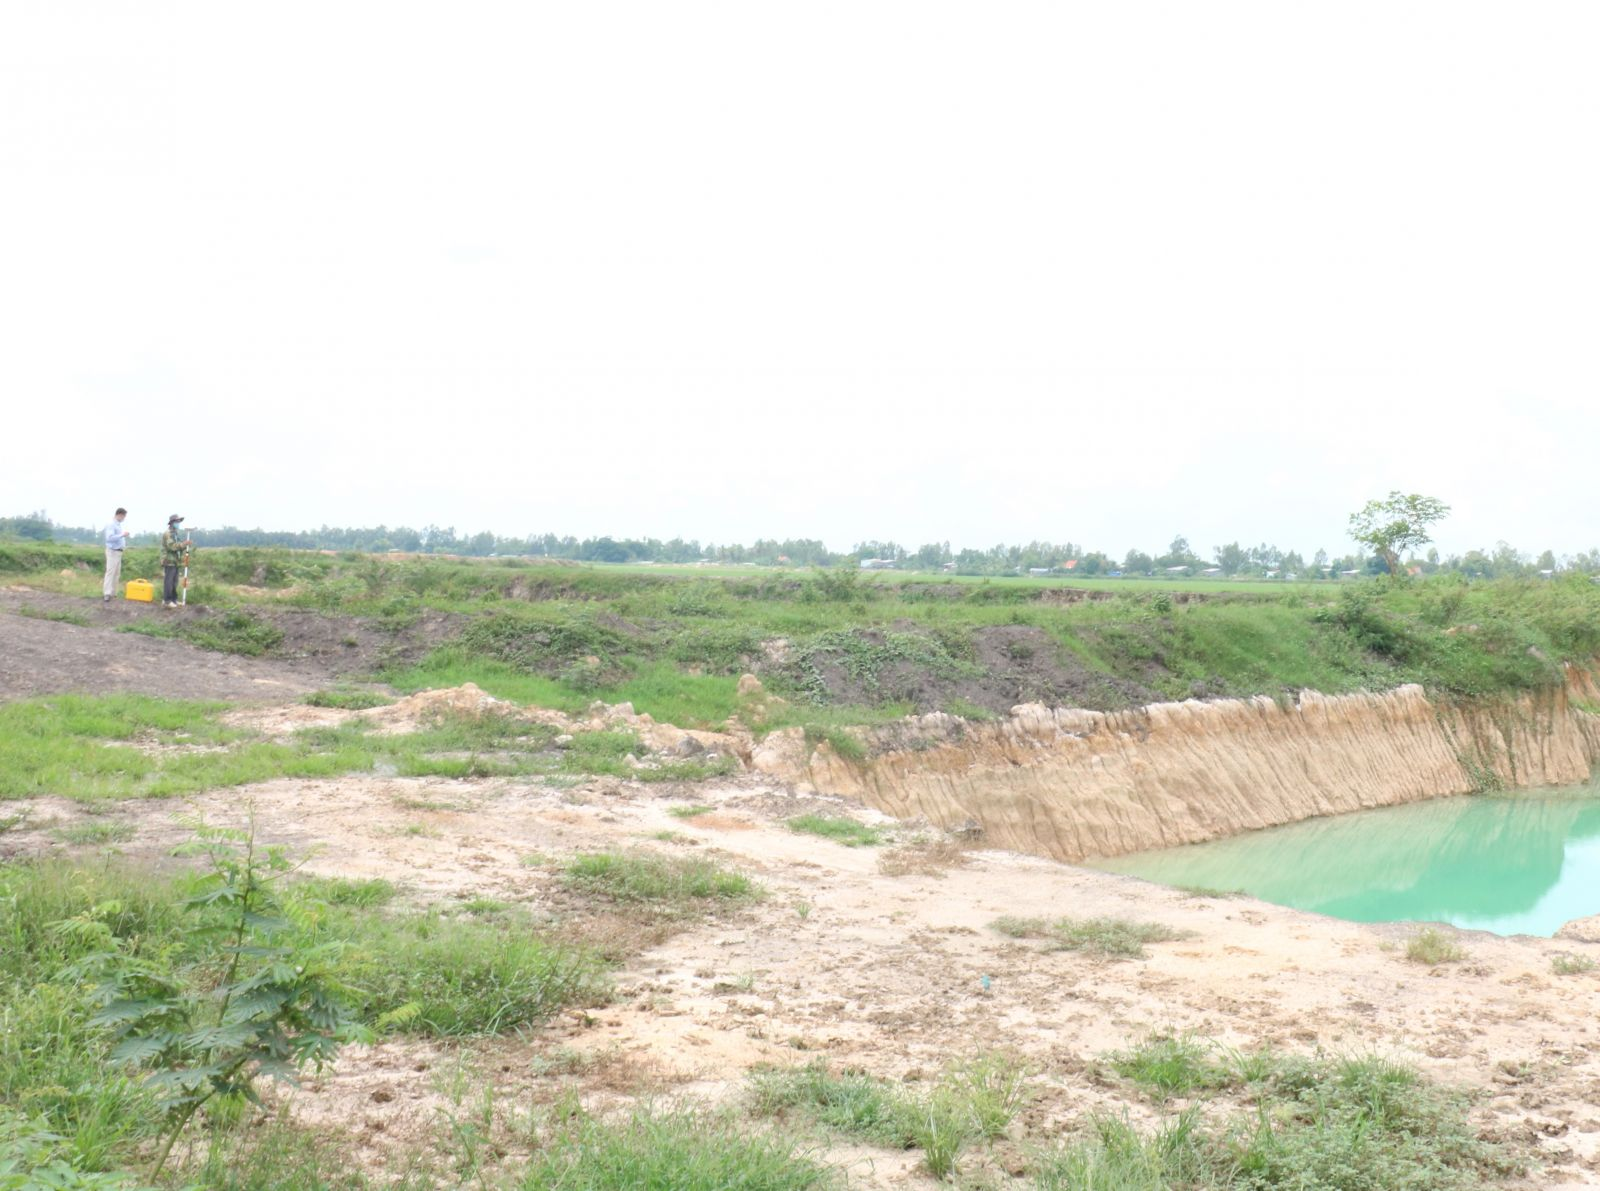 Land inventory work in the province is done well, ensured to meet the set requirements